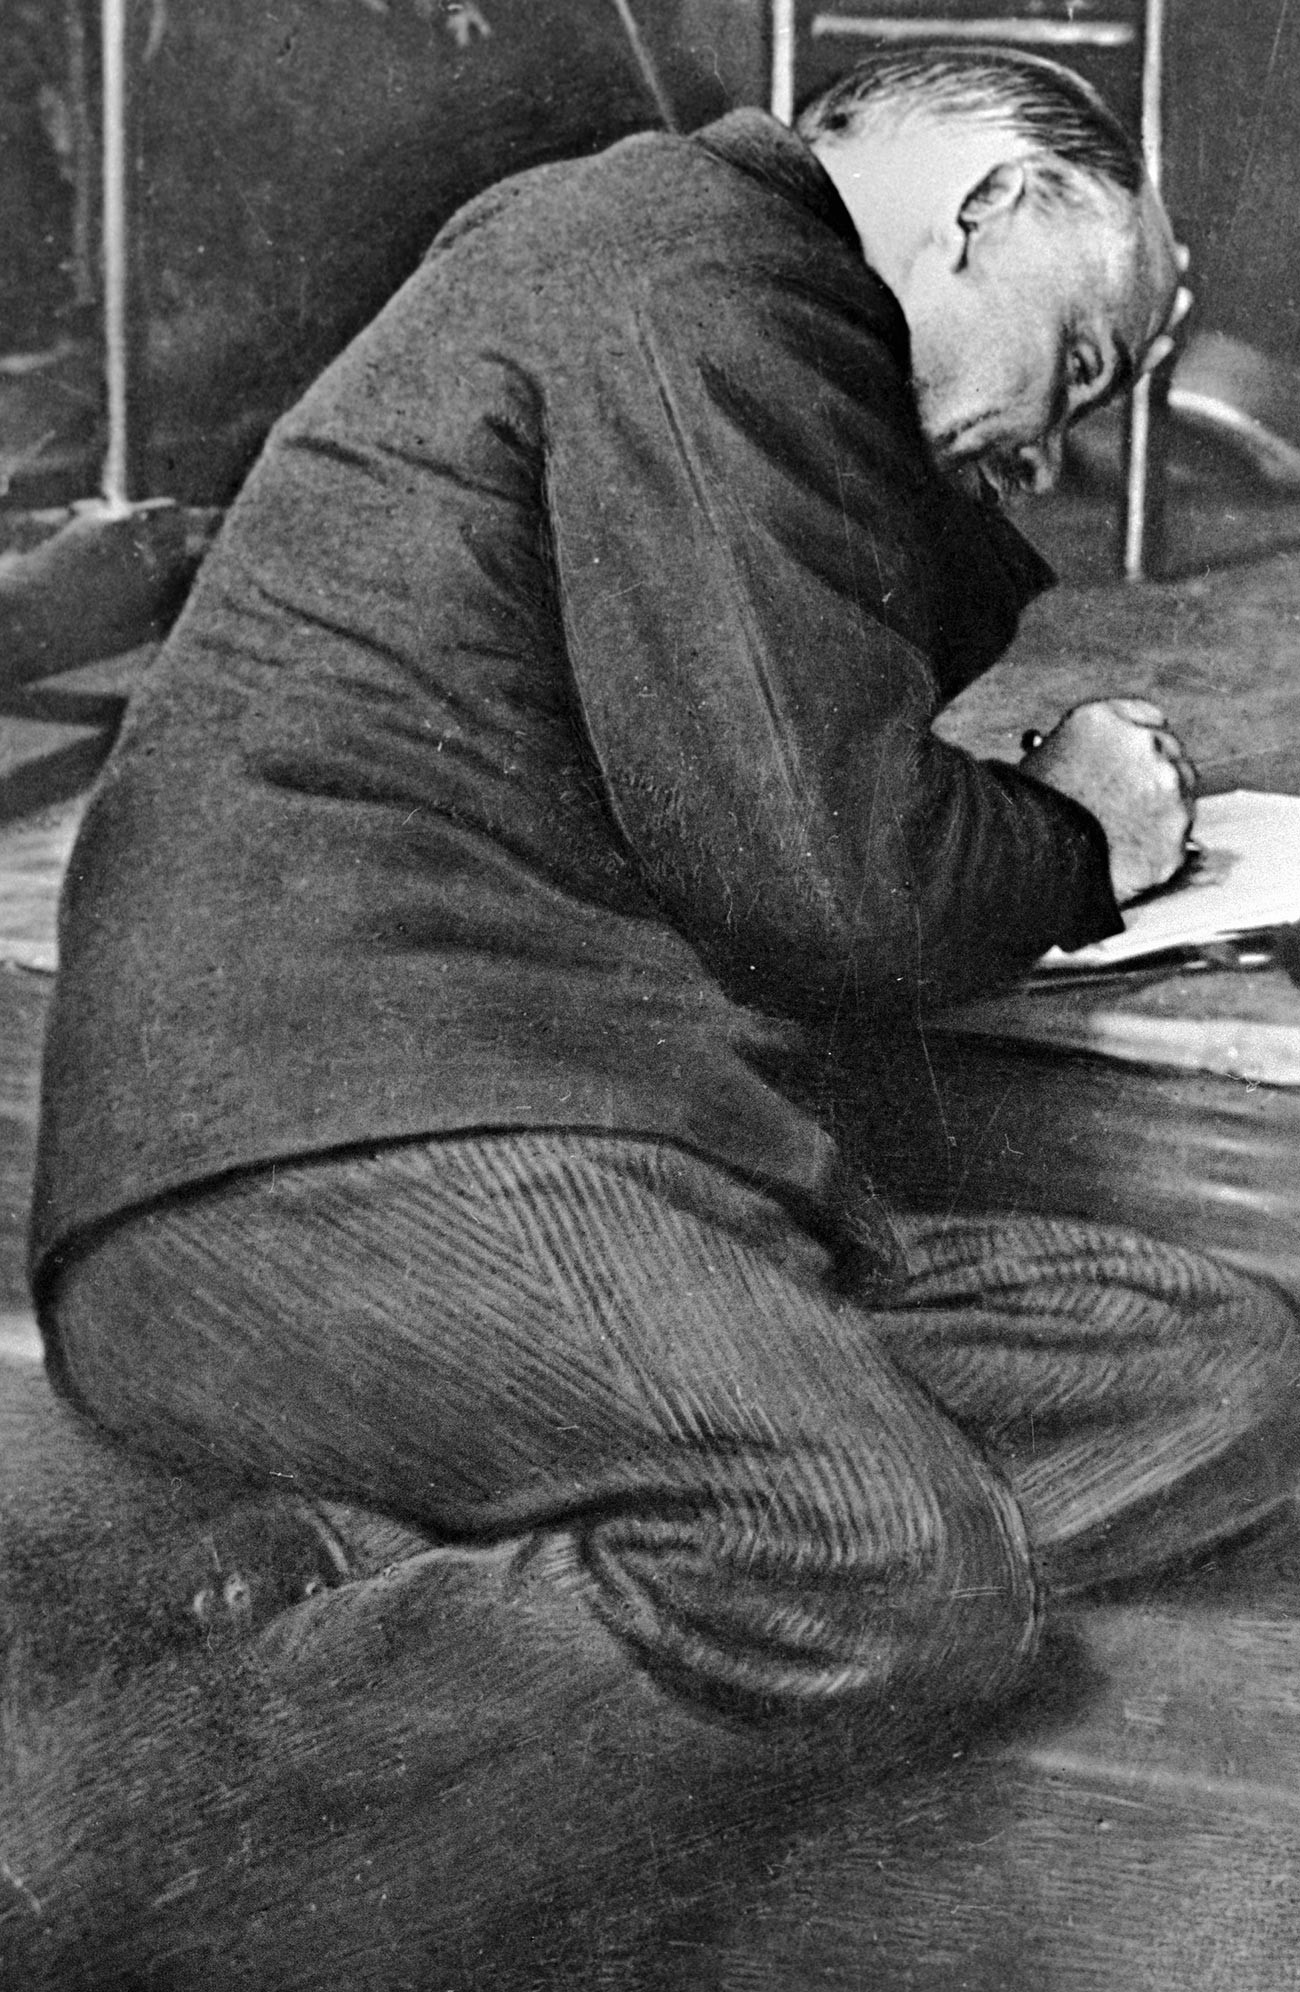 Lenin taking notes at the Third Congress of the Comintern in the Kremlin